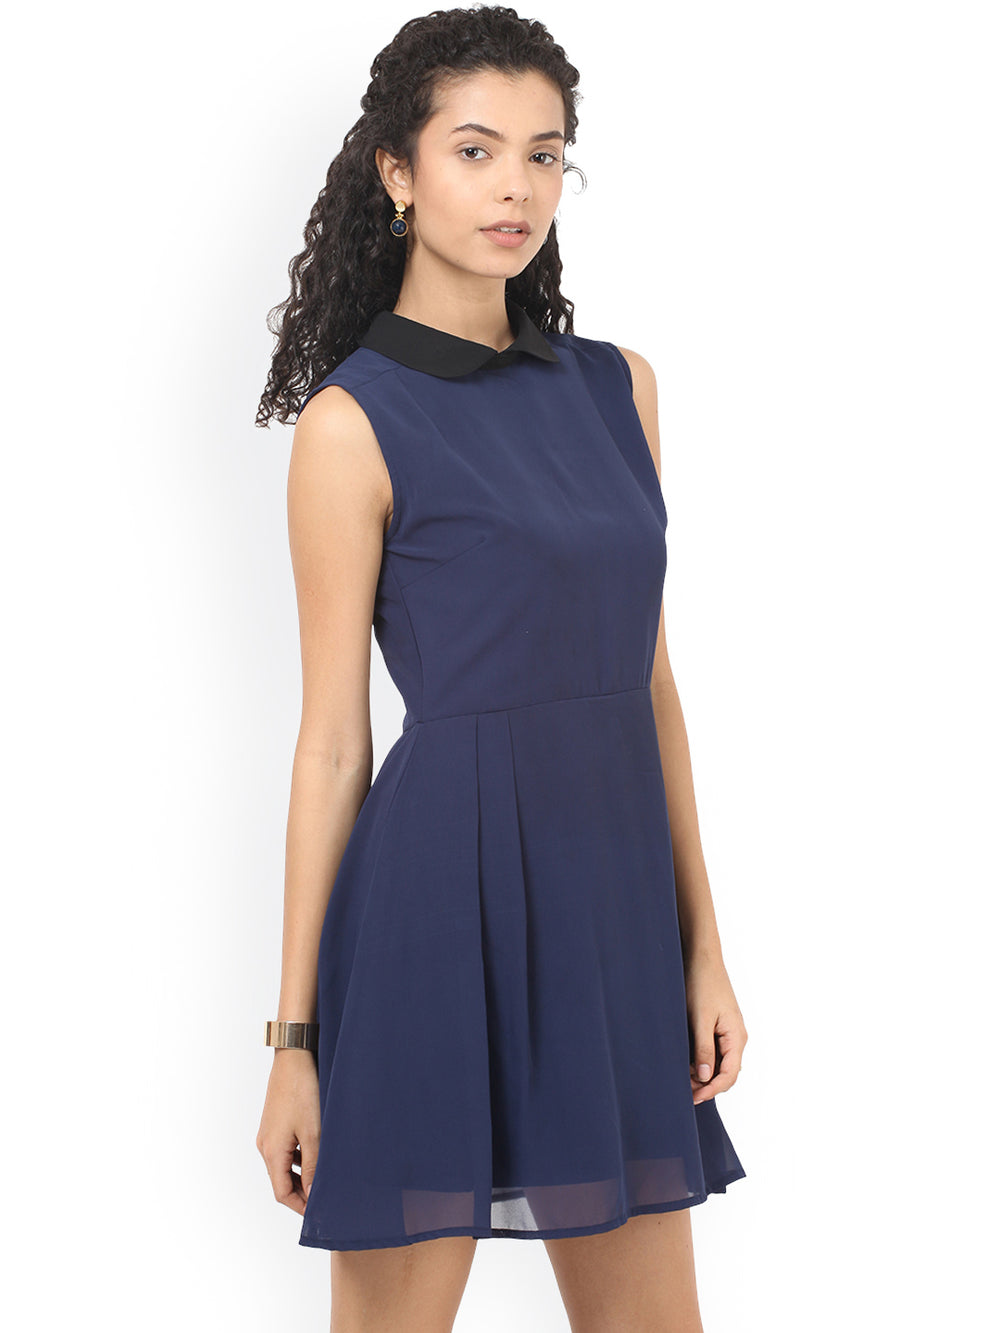 Besiva Women Navy Solid Fit and Flare Dress